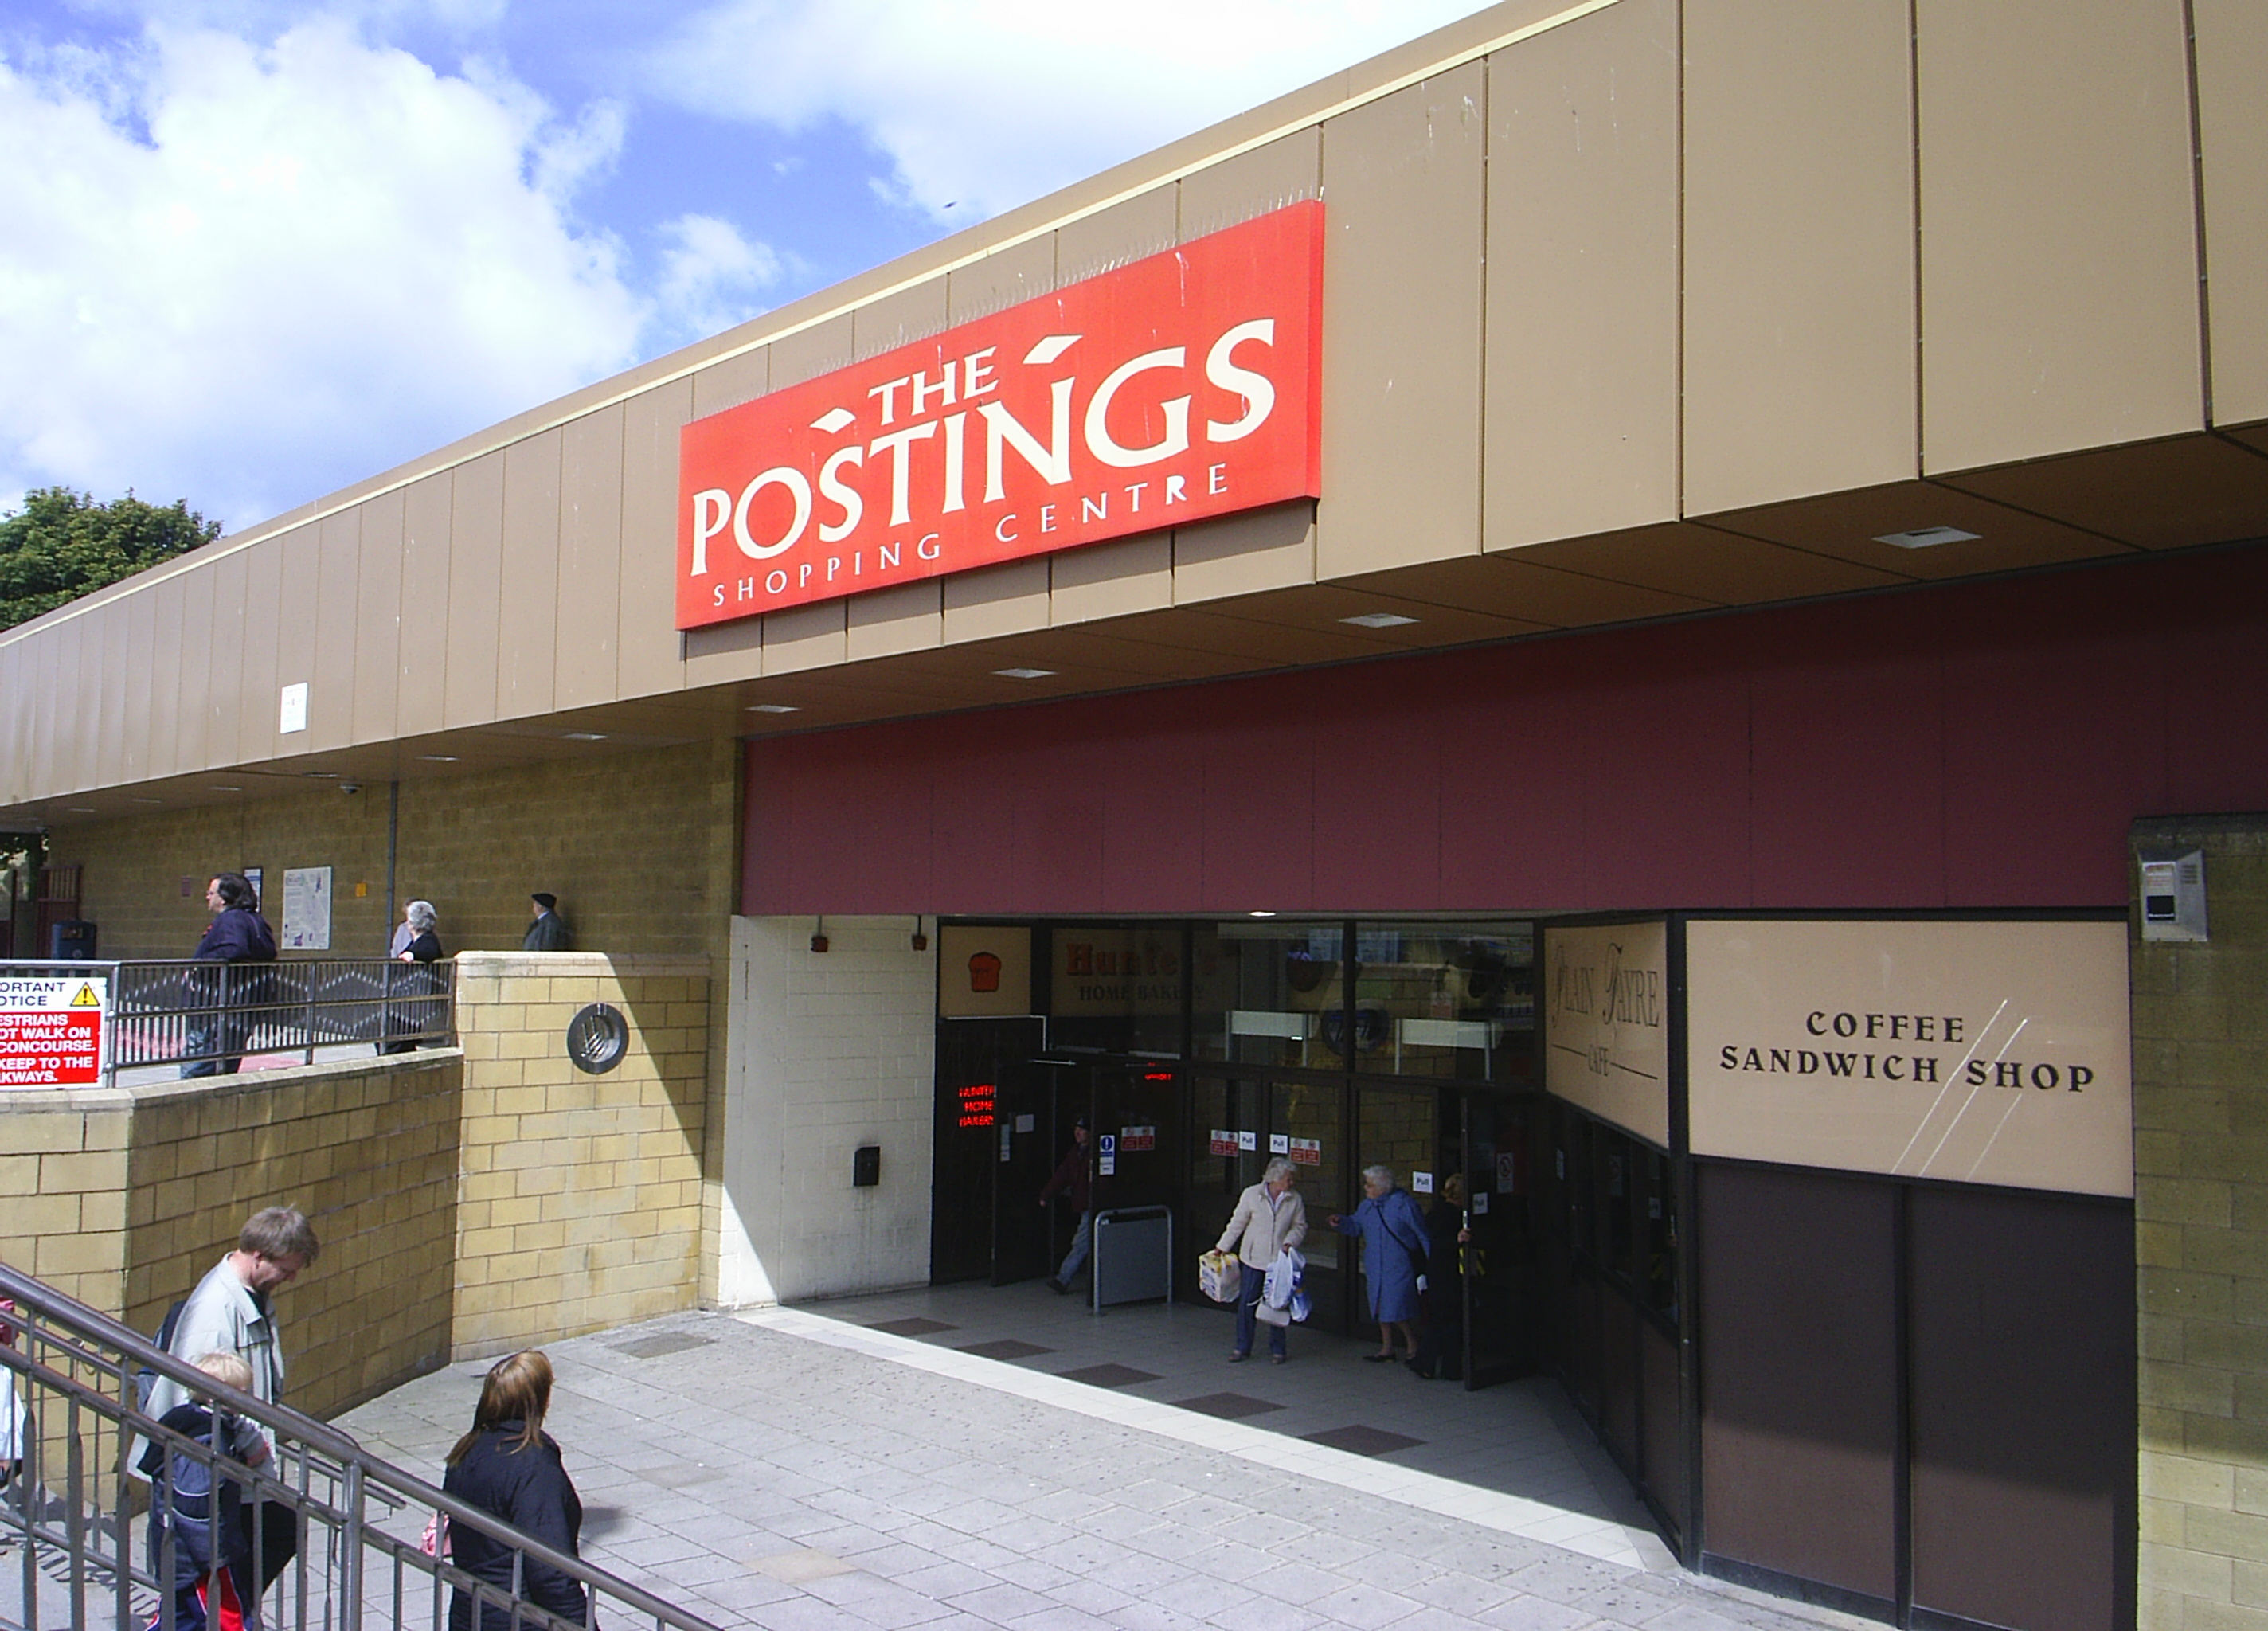 The Postings Shopping Centre in Kirkcaldy.